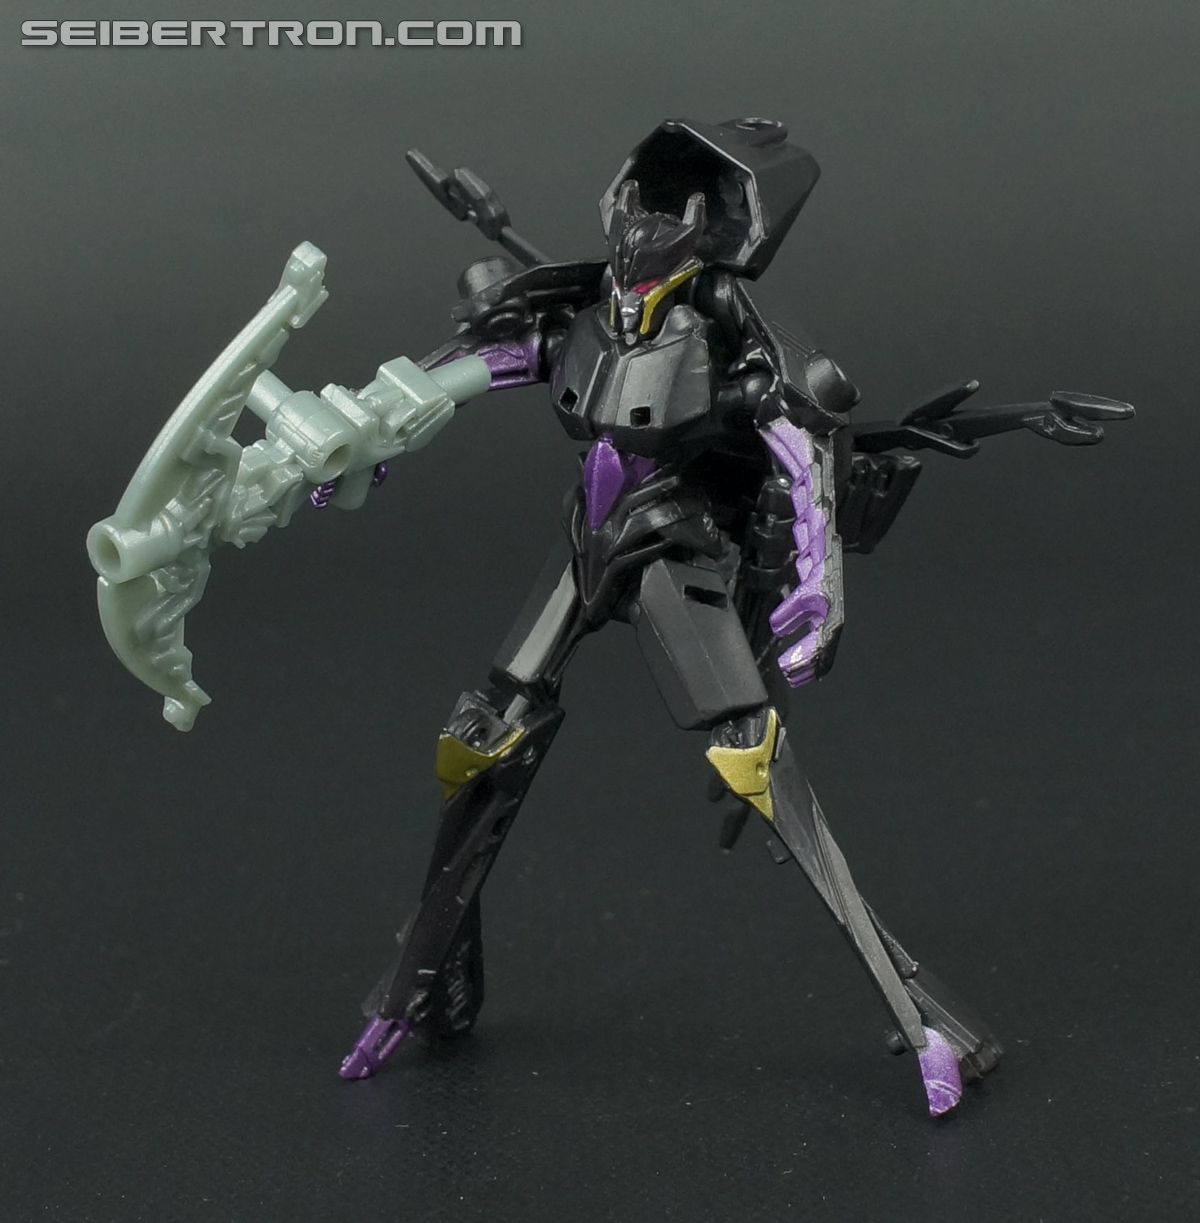 Transformers Prime Beast Hunters Cyberverse Airachnid (Image #68 of 93)